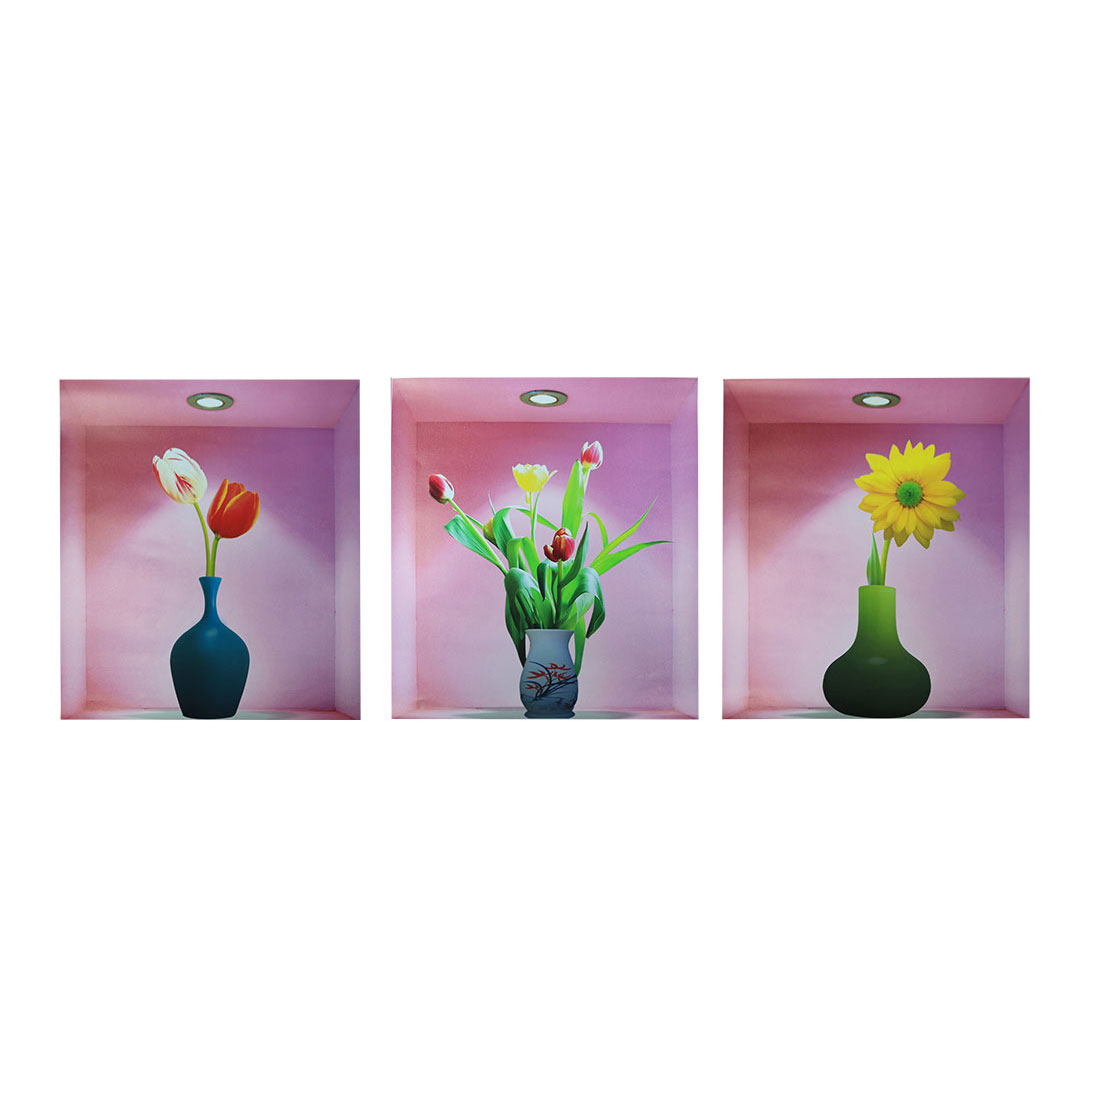 Home Room PVC Flower Vase Pattern Removable 3D Magic DIY Wall Art Sticker Decal